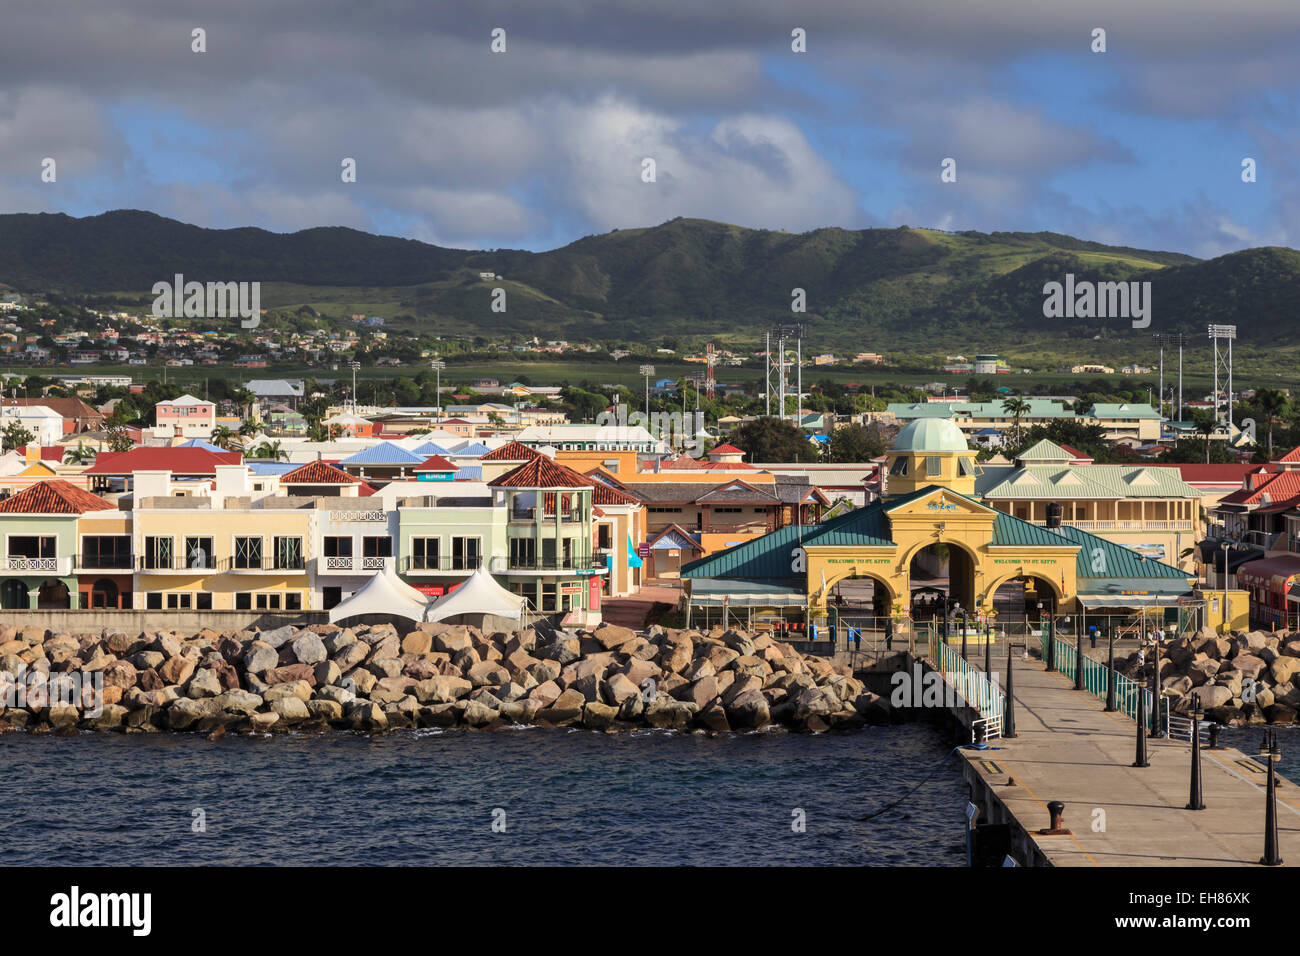 Port Zante Cruise Ship Port Basseterre St Kitts St Kitts And - How many cruise ships in port